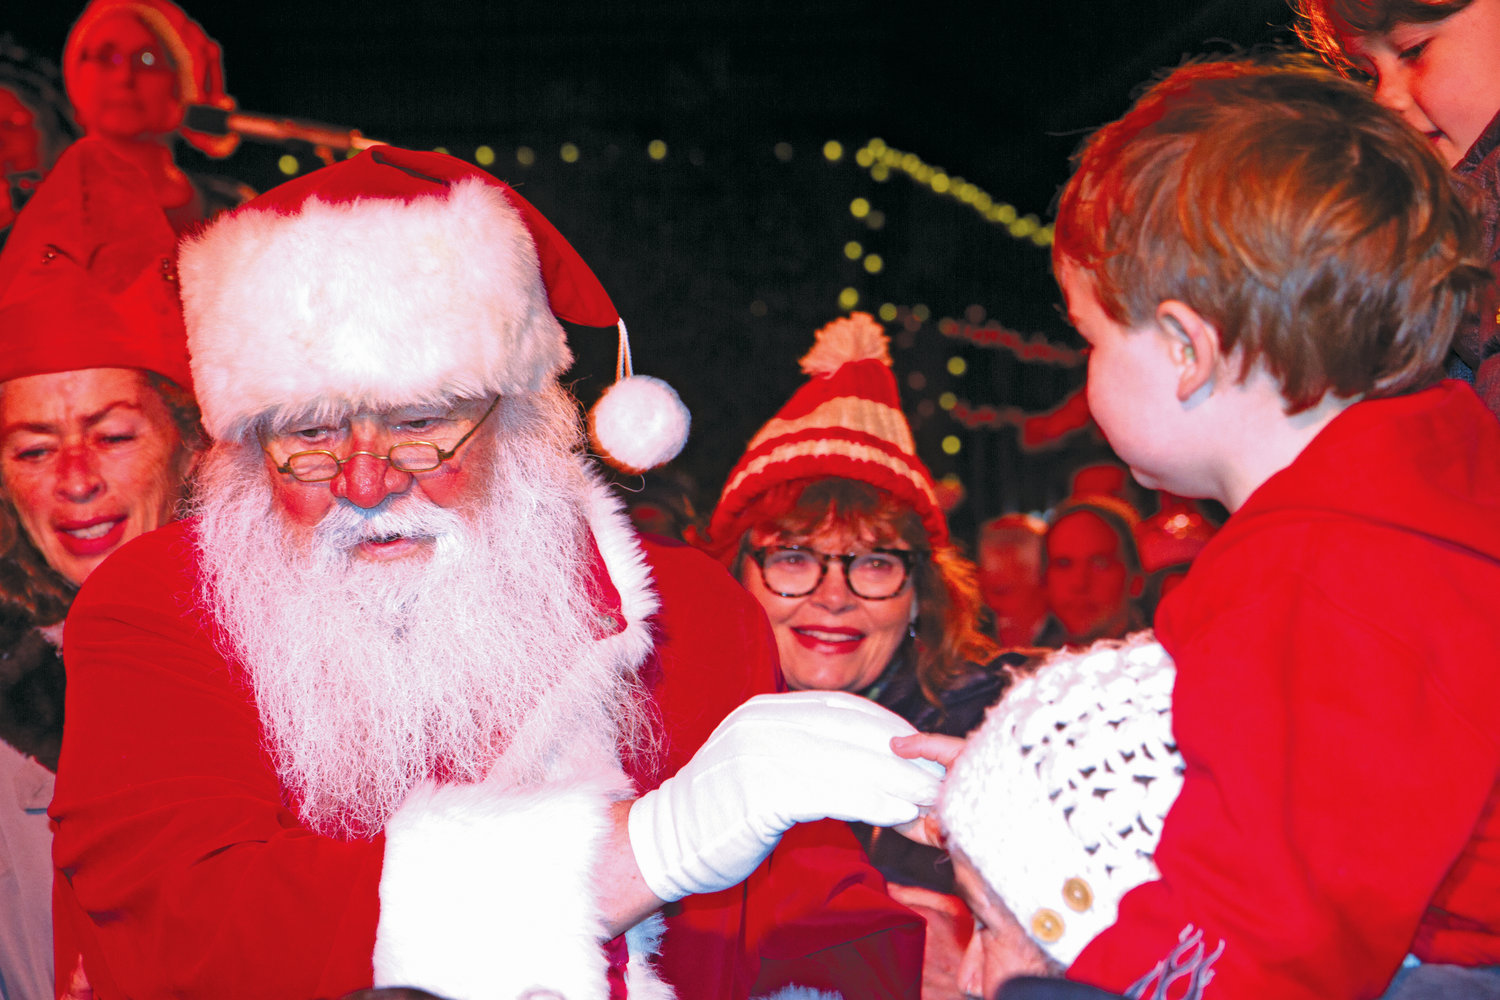 Santa greets children at the Port Townsend tree lighting Dec. 1.